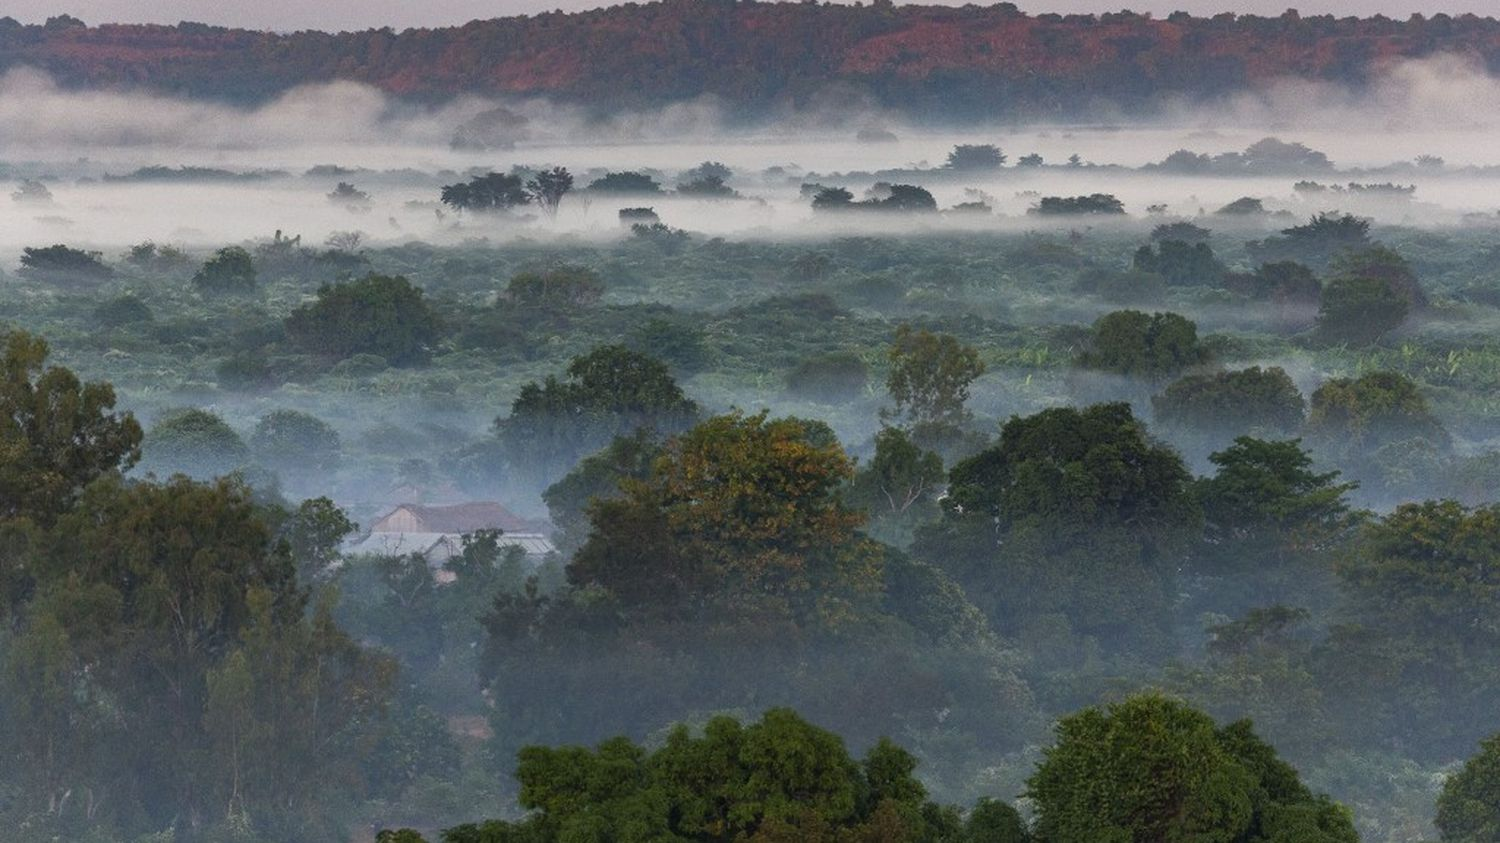 One third of tree species are threatened with extinction worldwide